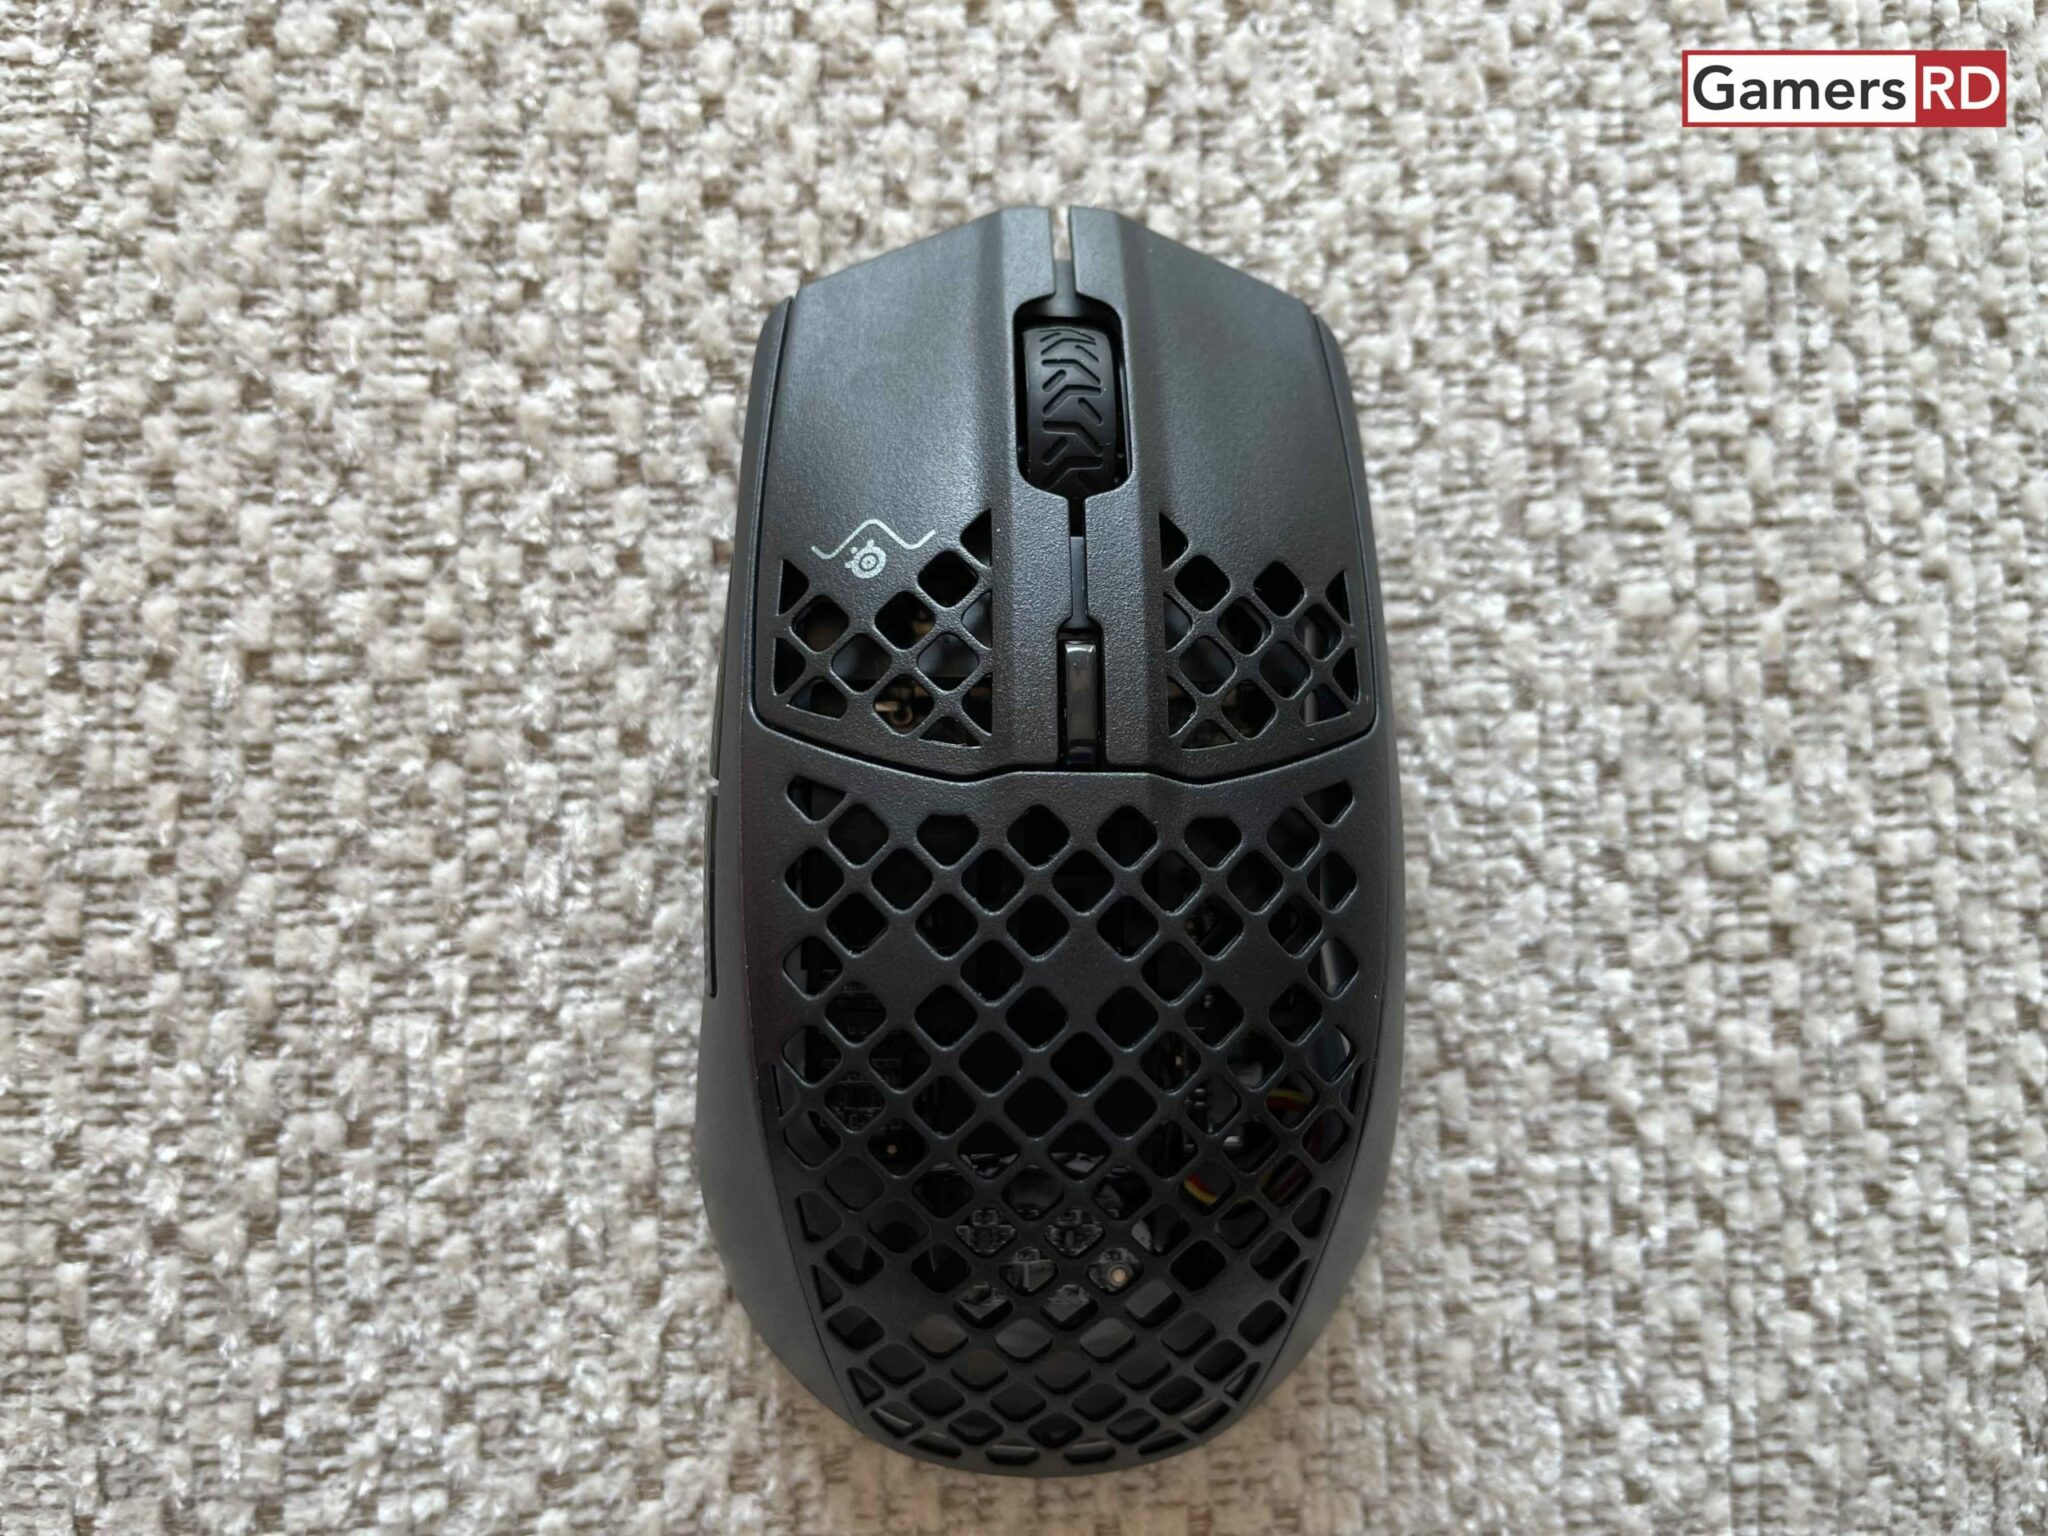 Steel Series Aerox 3 Wireless mouse gaming, Review 1 GamersRD